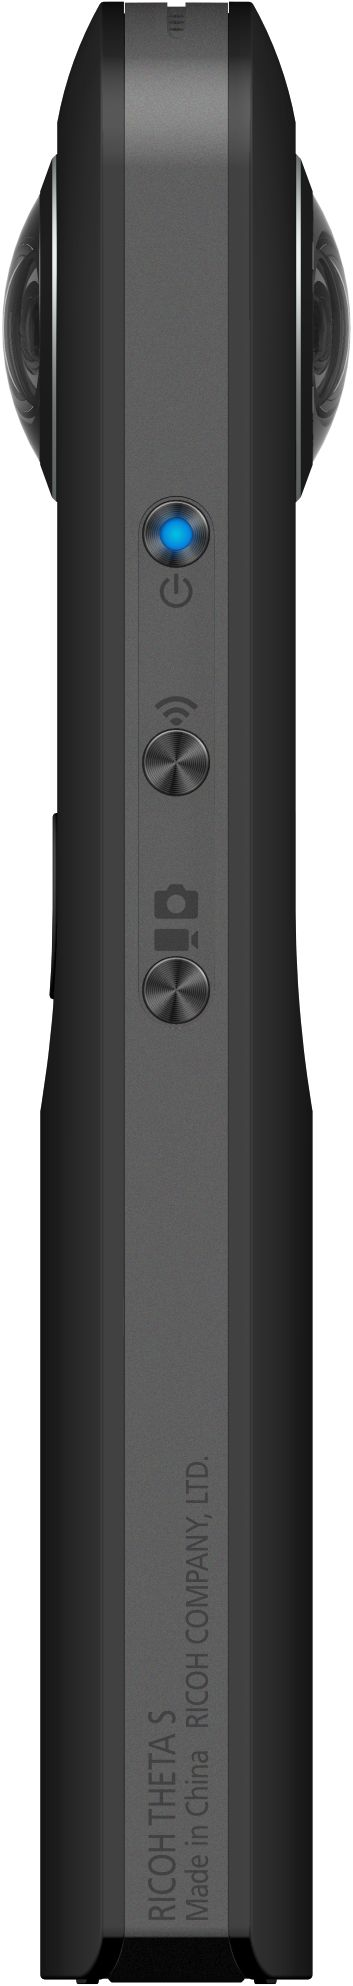 RICOH THETA S Side